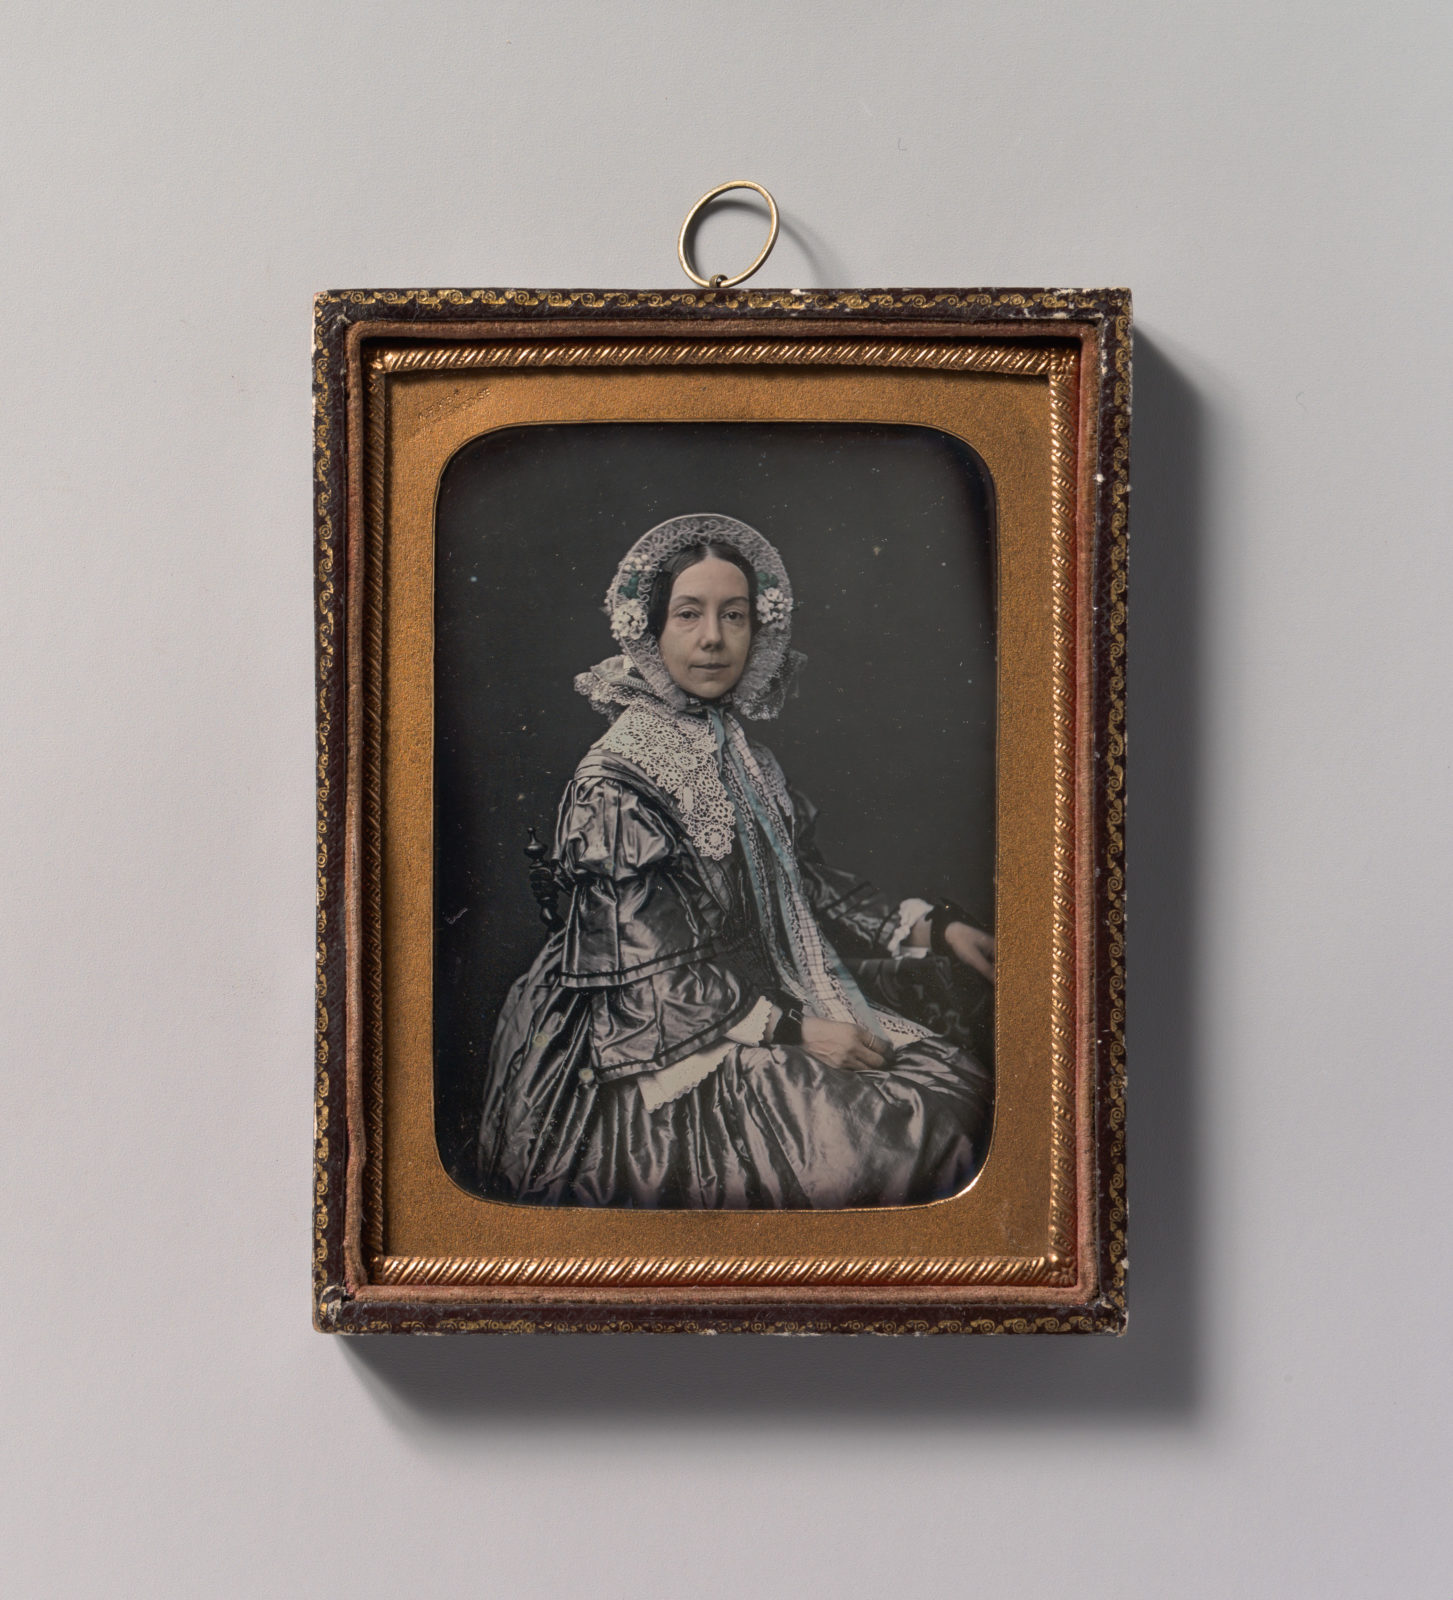 [Seated Middle-aged Woman Dressed in Finery]